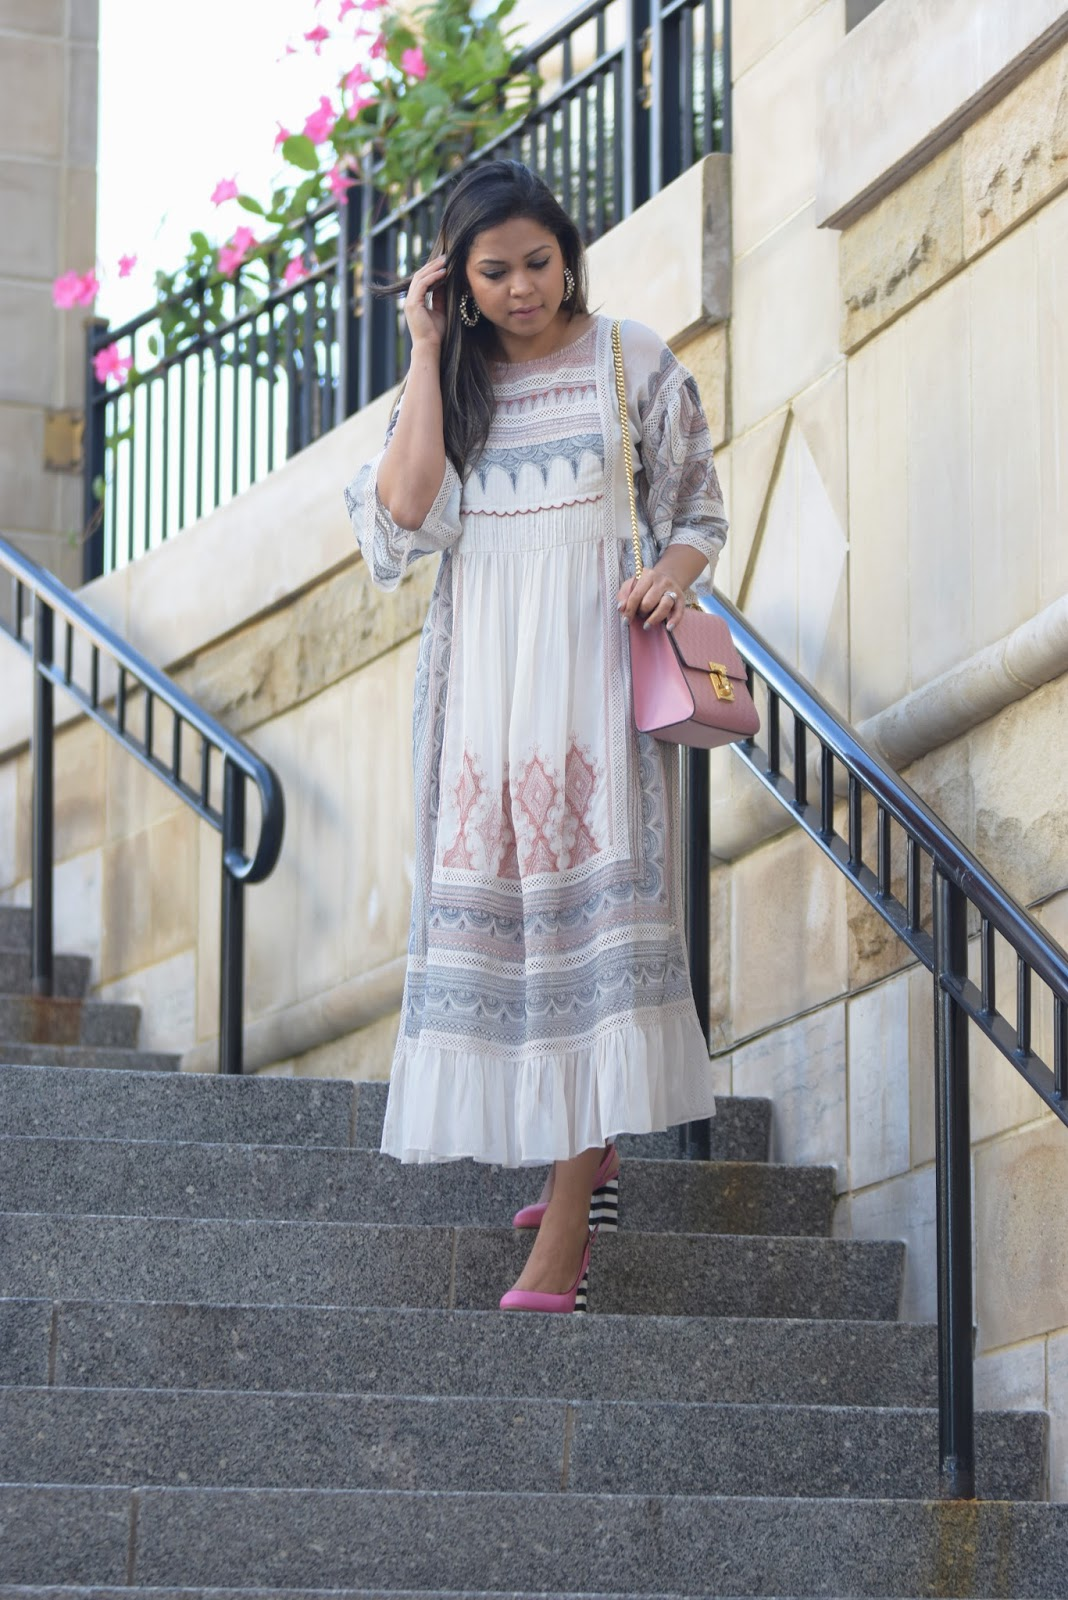 how to design your own shoes, pink heels, stripes sandals, fall fashion , chunky heels, black and white shoes, street style, fashion , blogger, shoes of prey creator, myriad musings